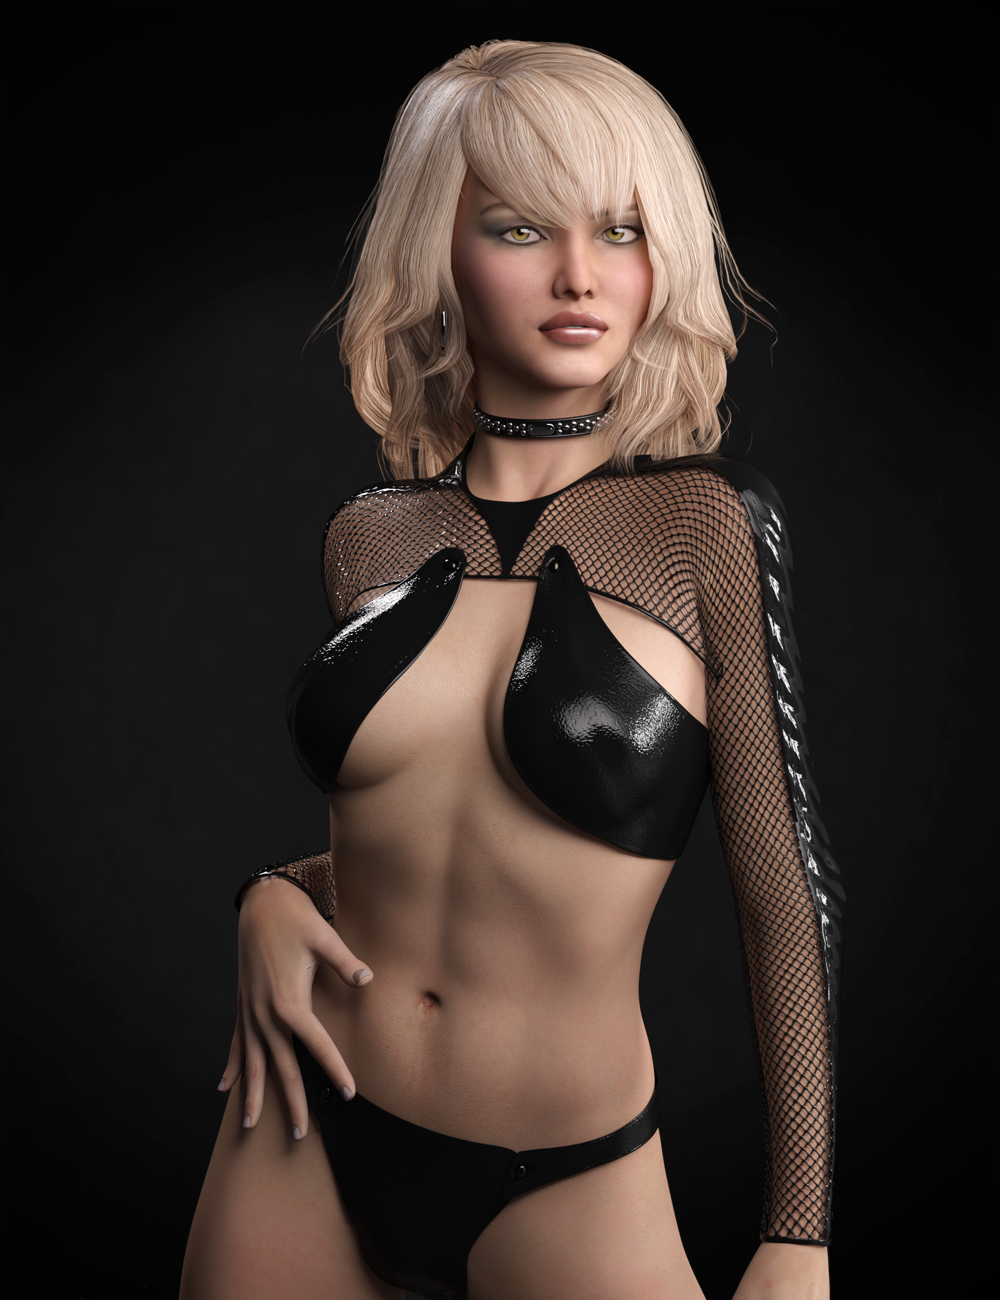 LY Amorette by: Lyoness, 3D Models by Daz 3D